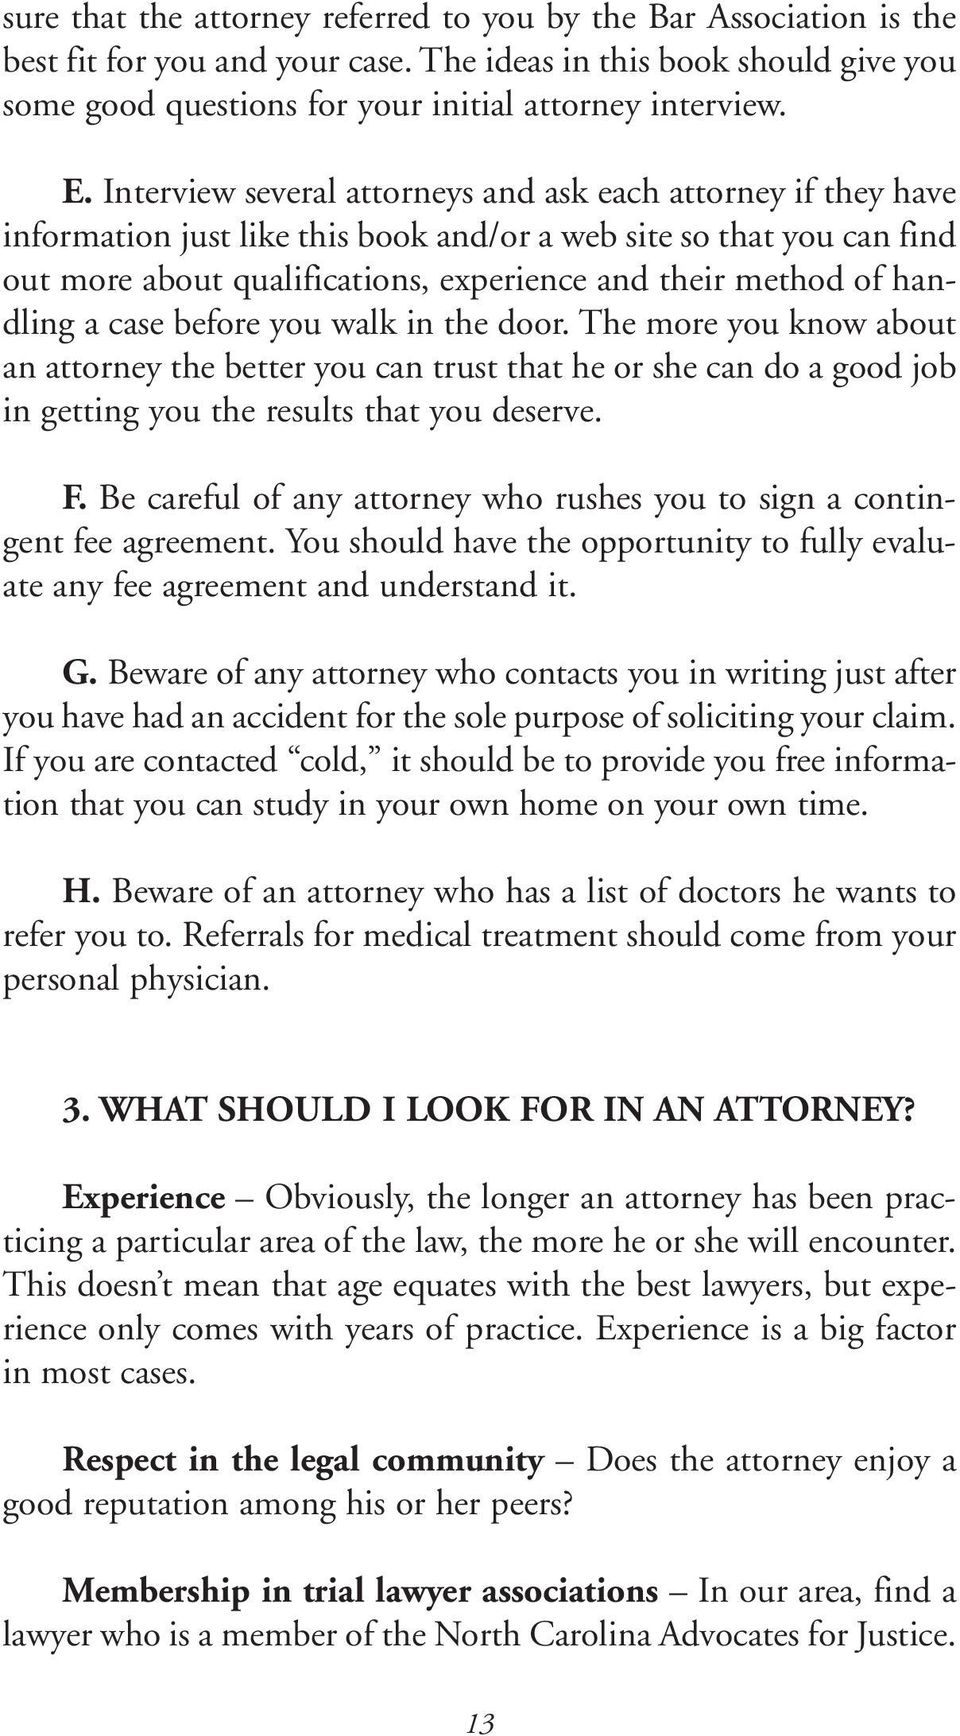 handling a case before you walk in the door. The more you know about an attorney the better you can trust that he or she can do a good job in getting you the results that you deserve. F.